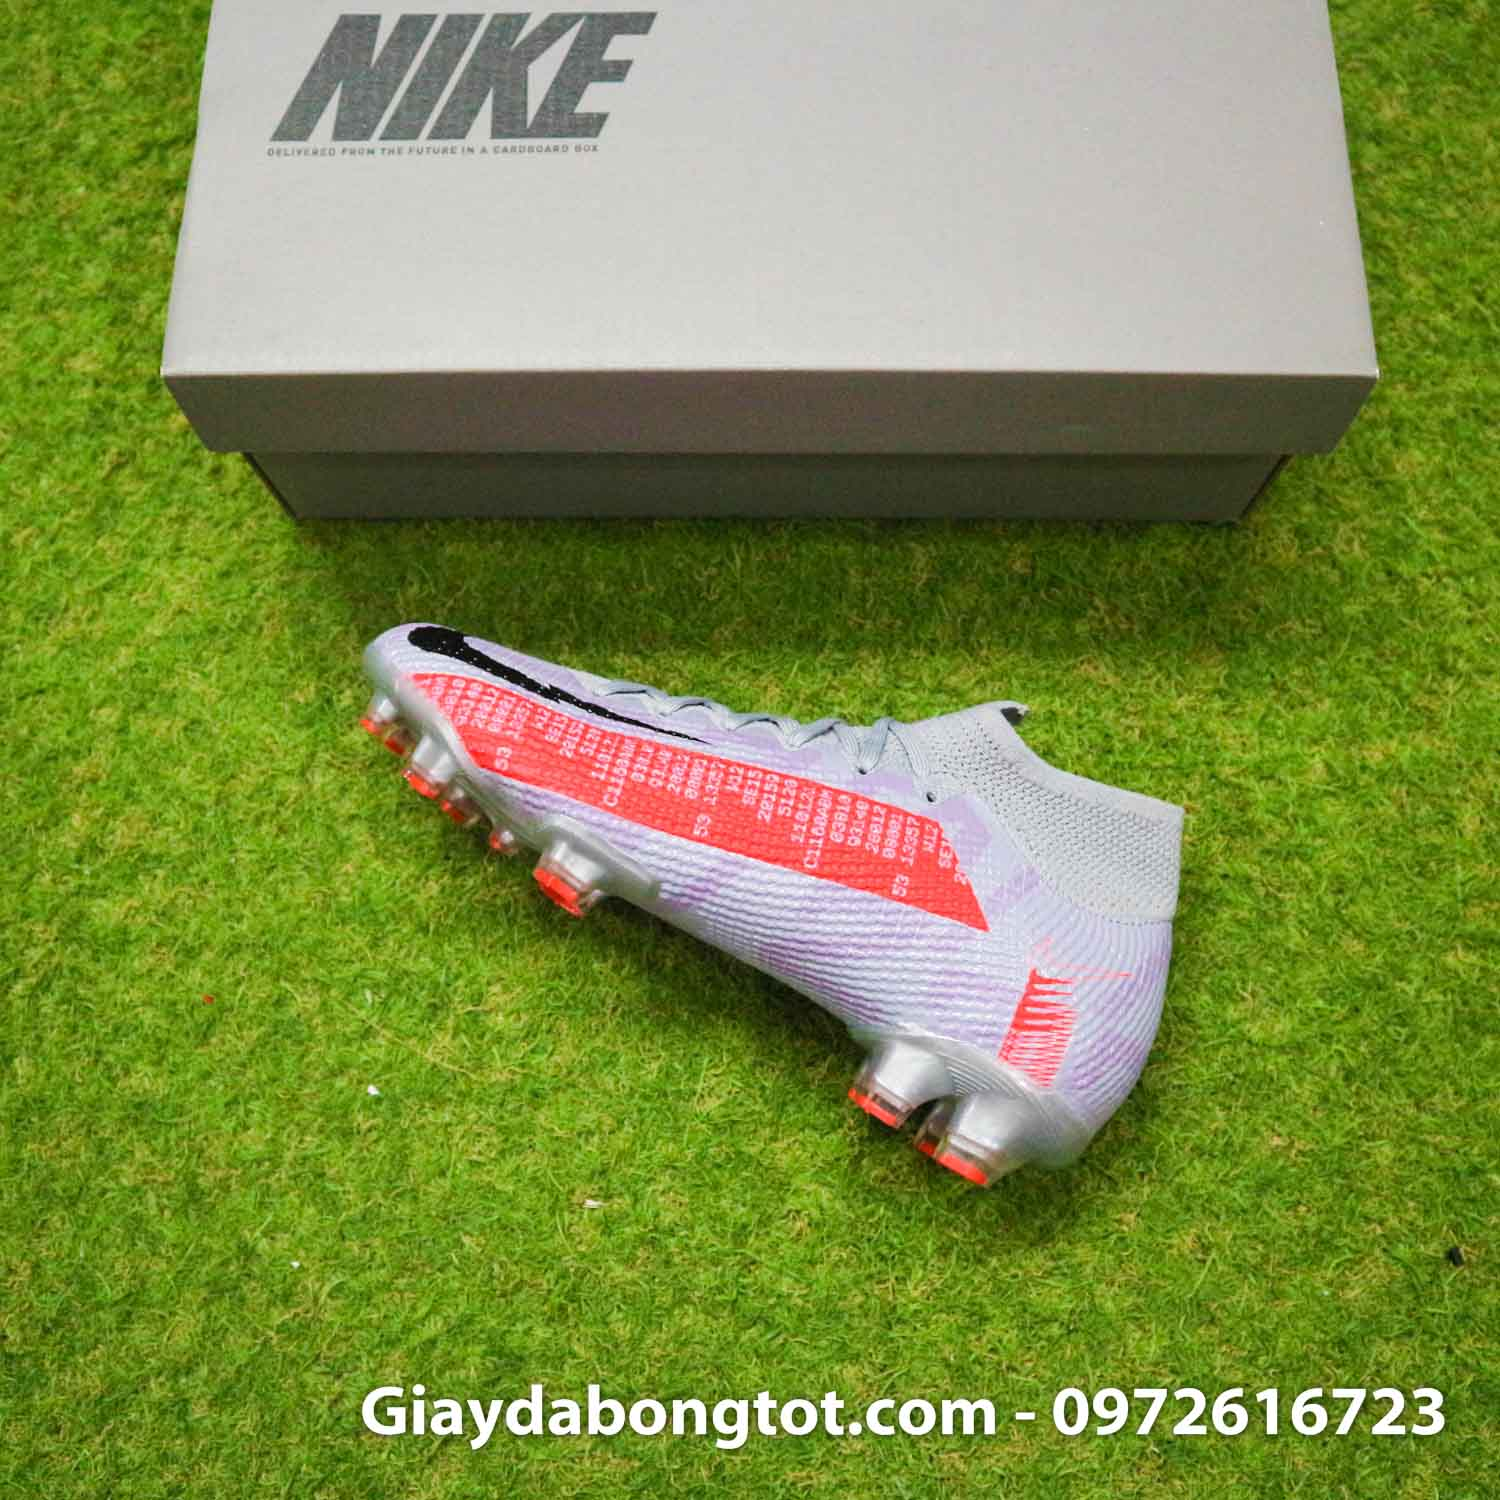 nike mercurial superfly 7 elite fg xam do vach den euro 2020 (15)